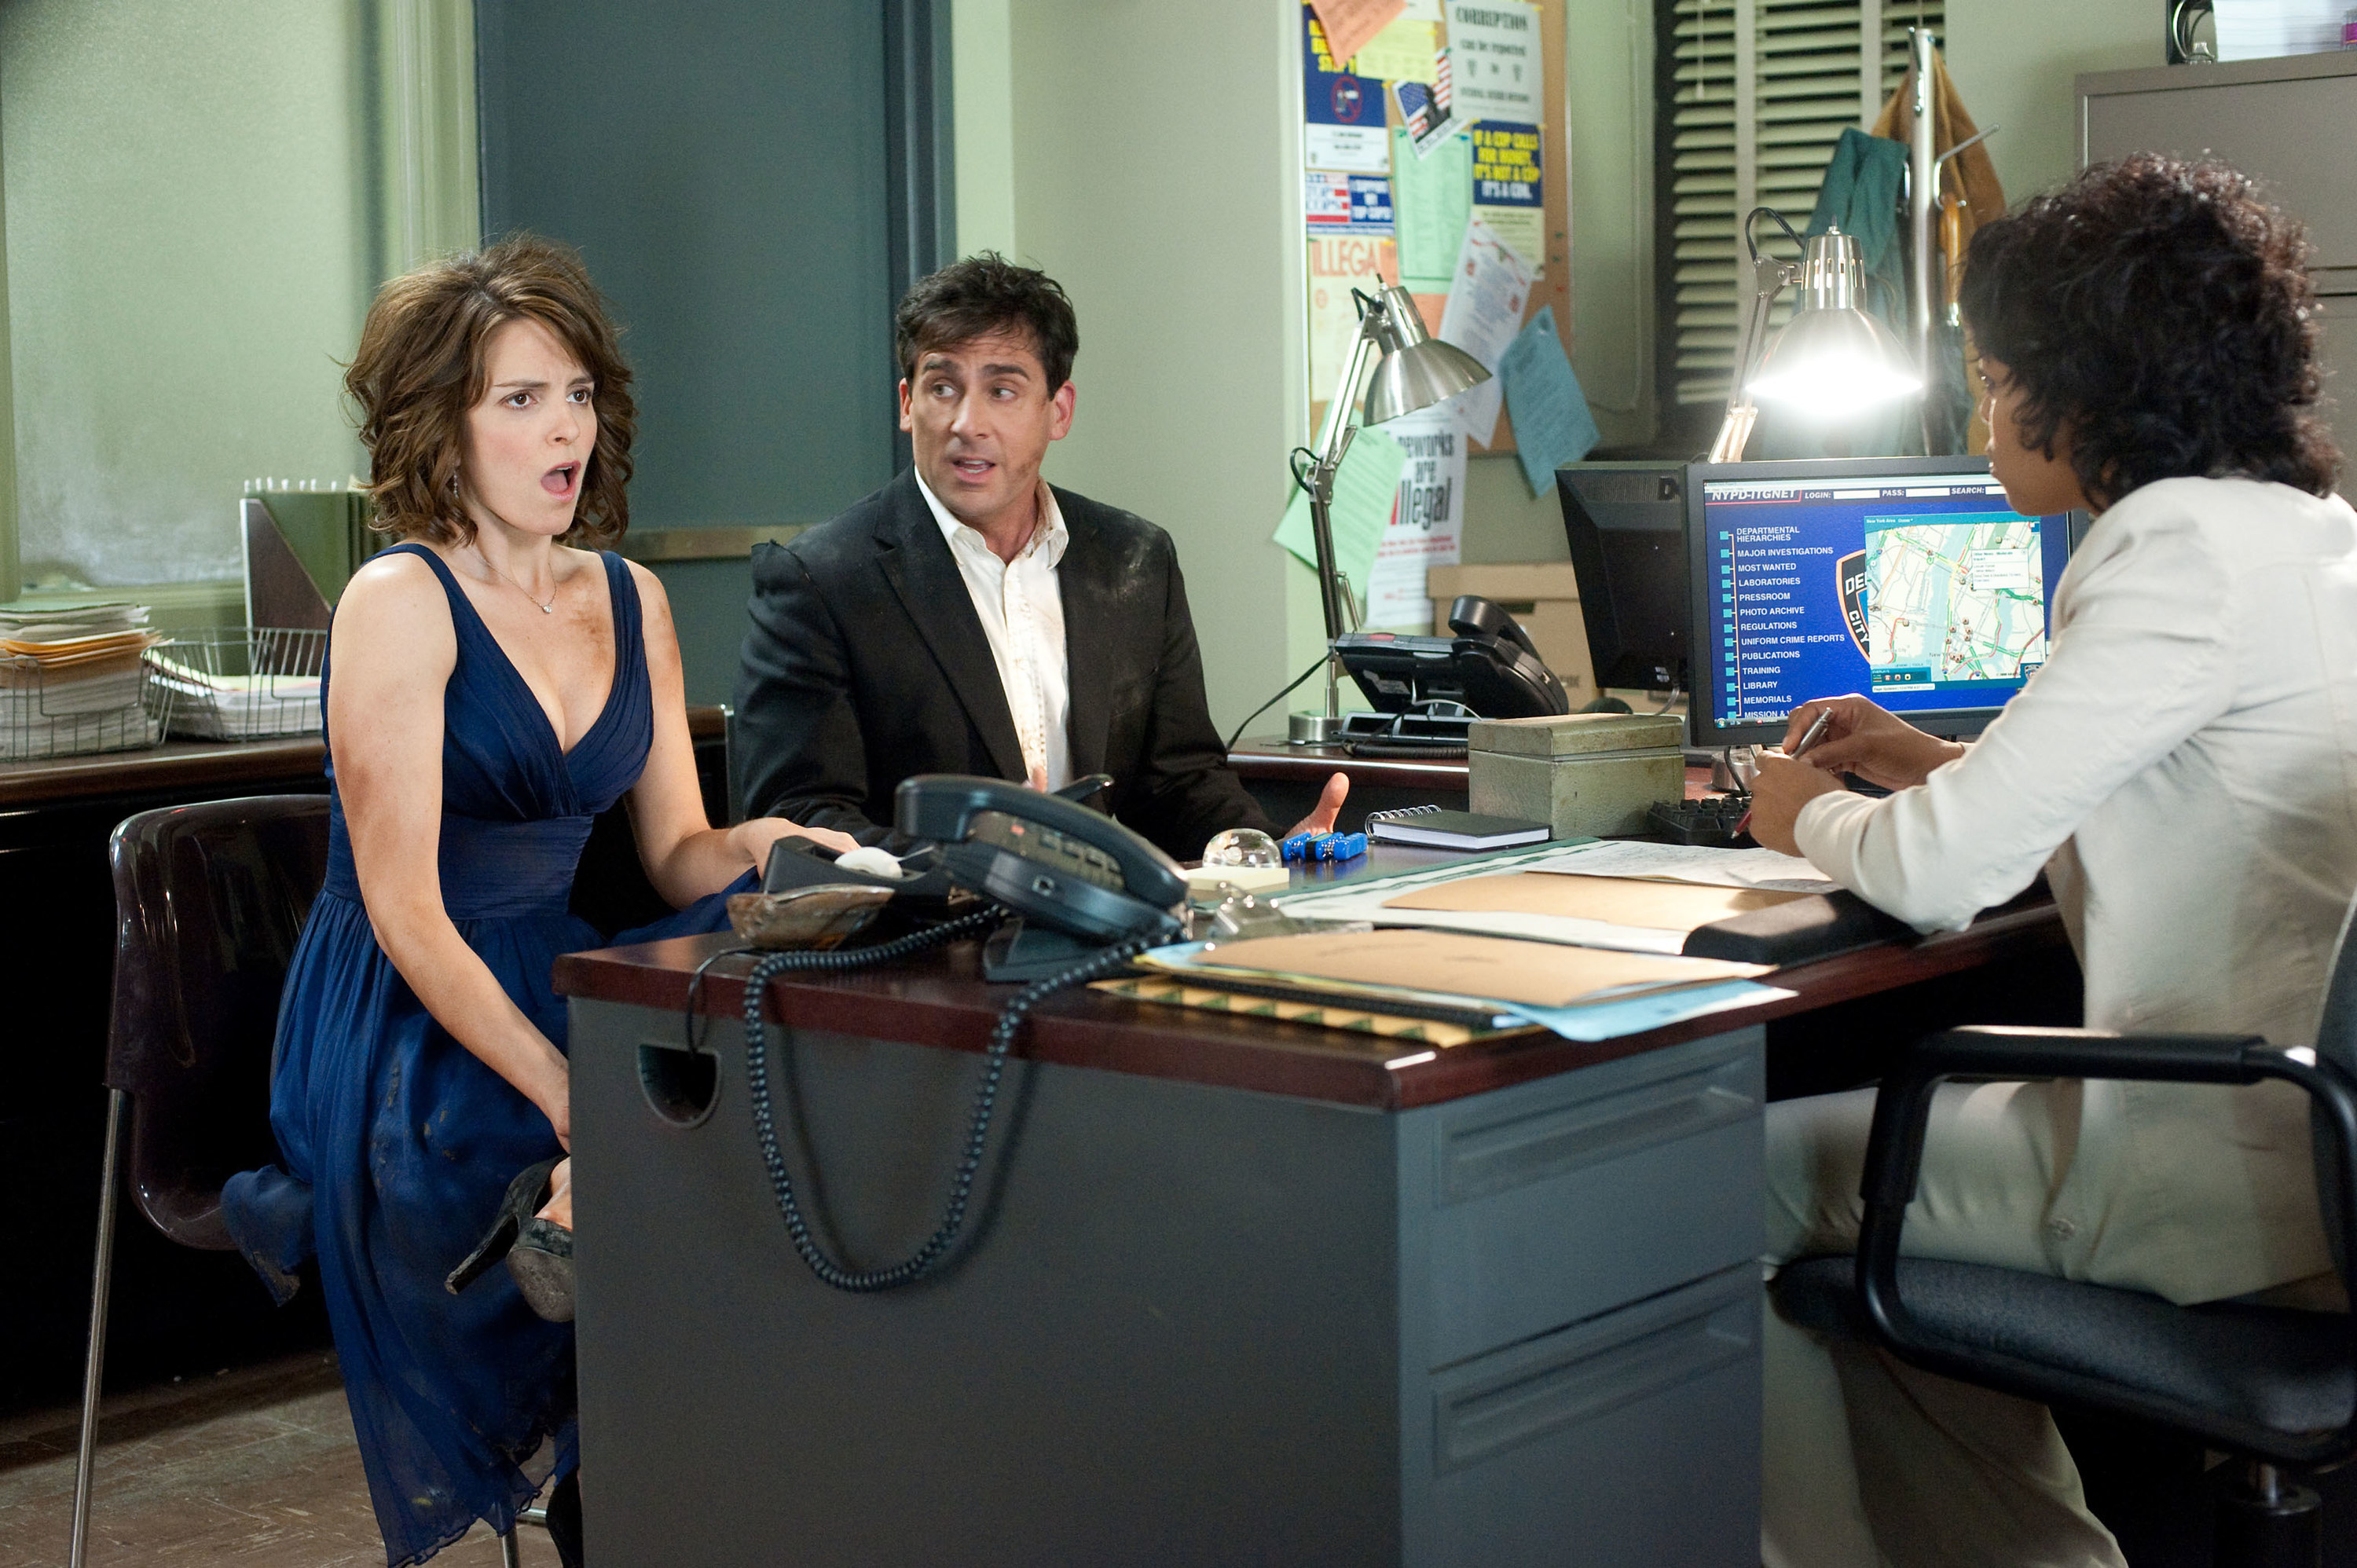 Tina Fey and Steve Carell appearing to look concerned while their outfits are ruined